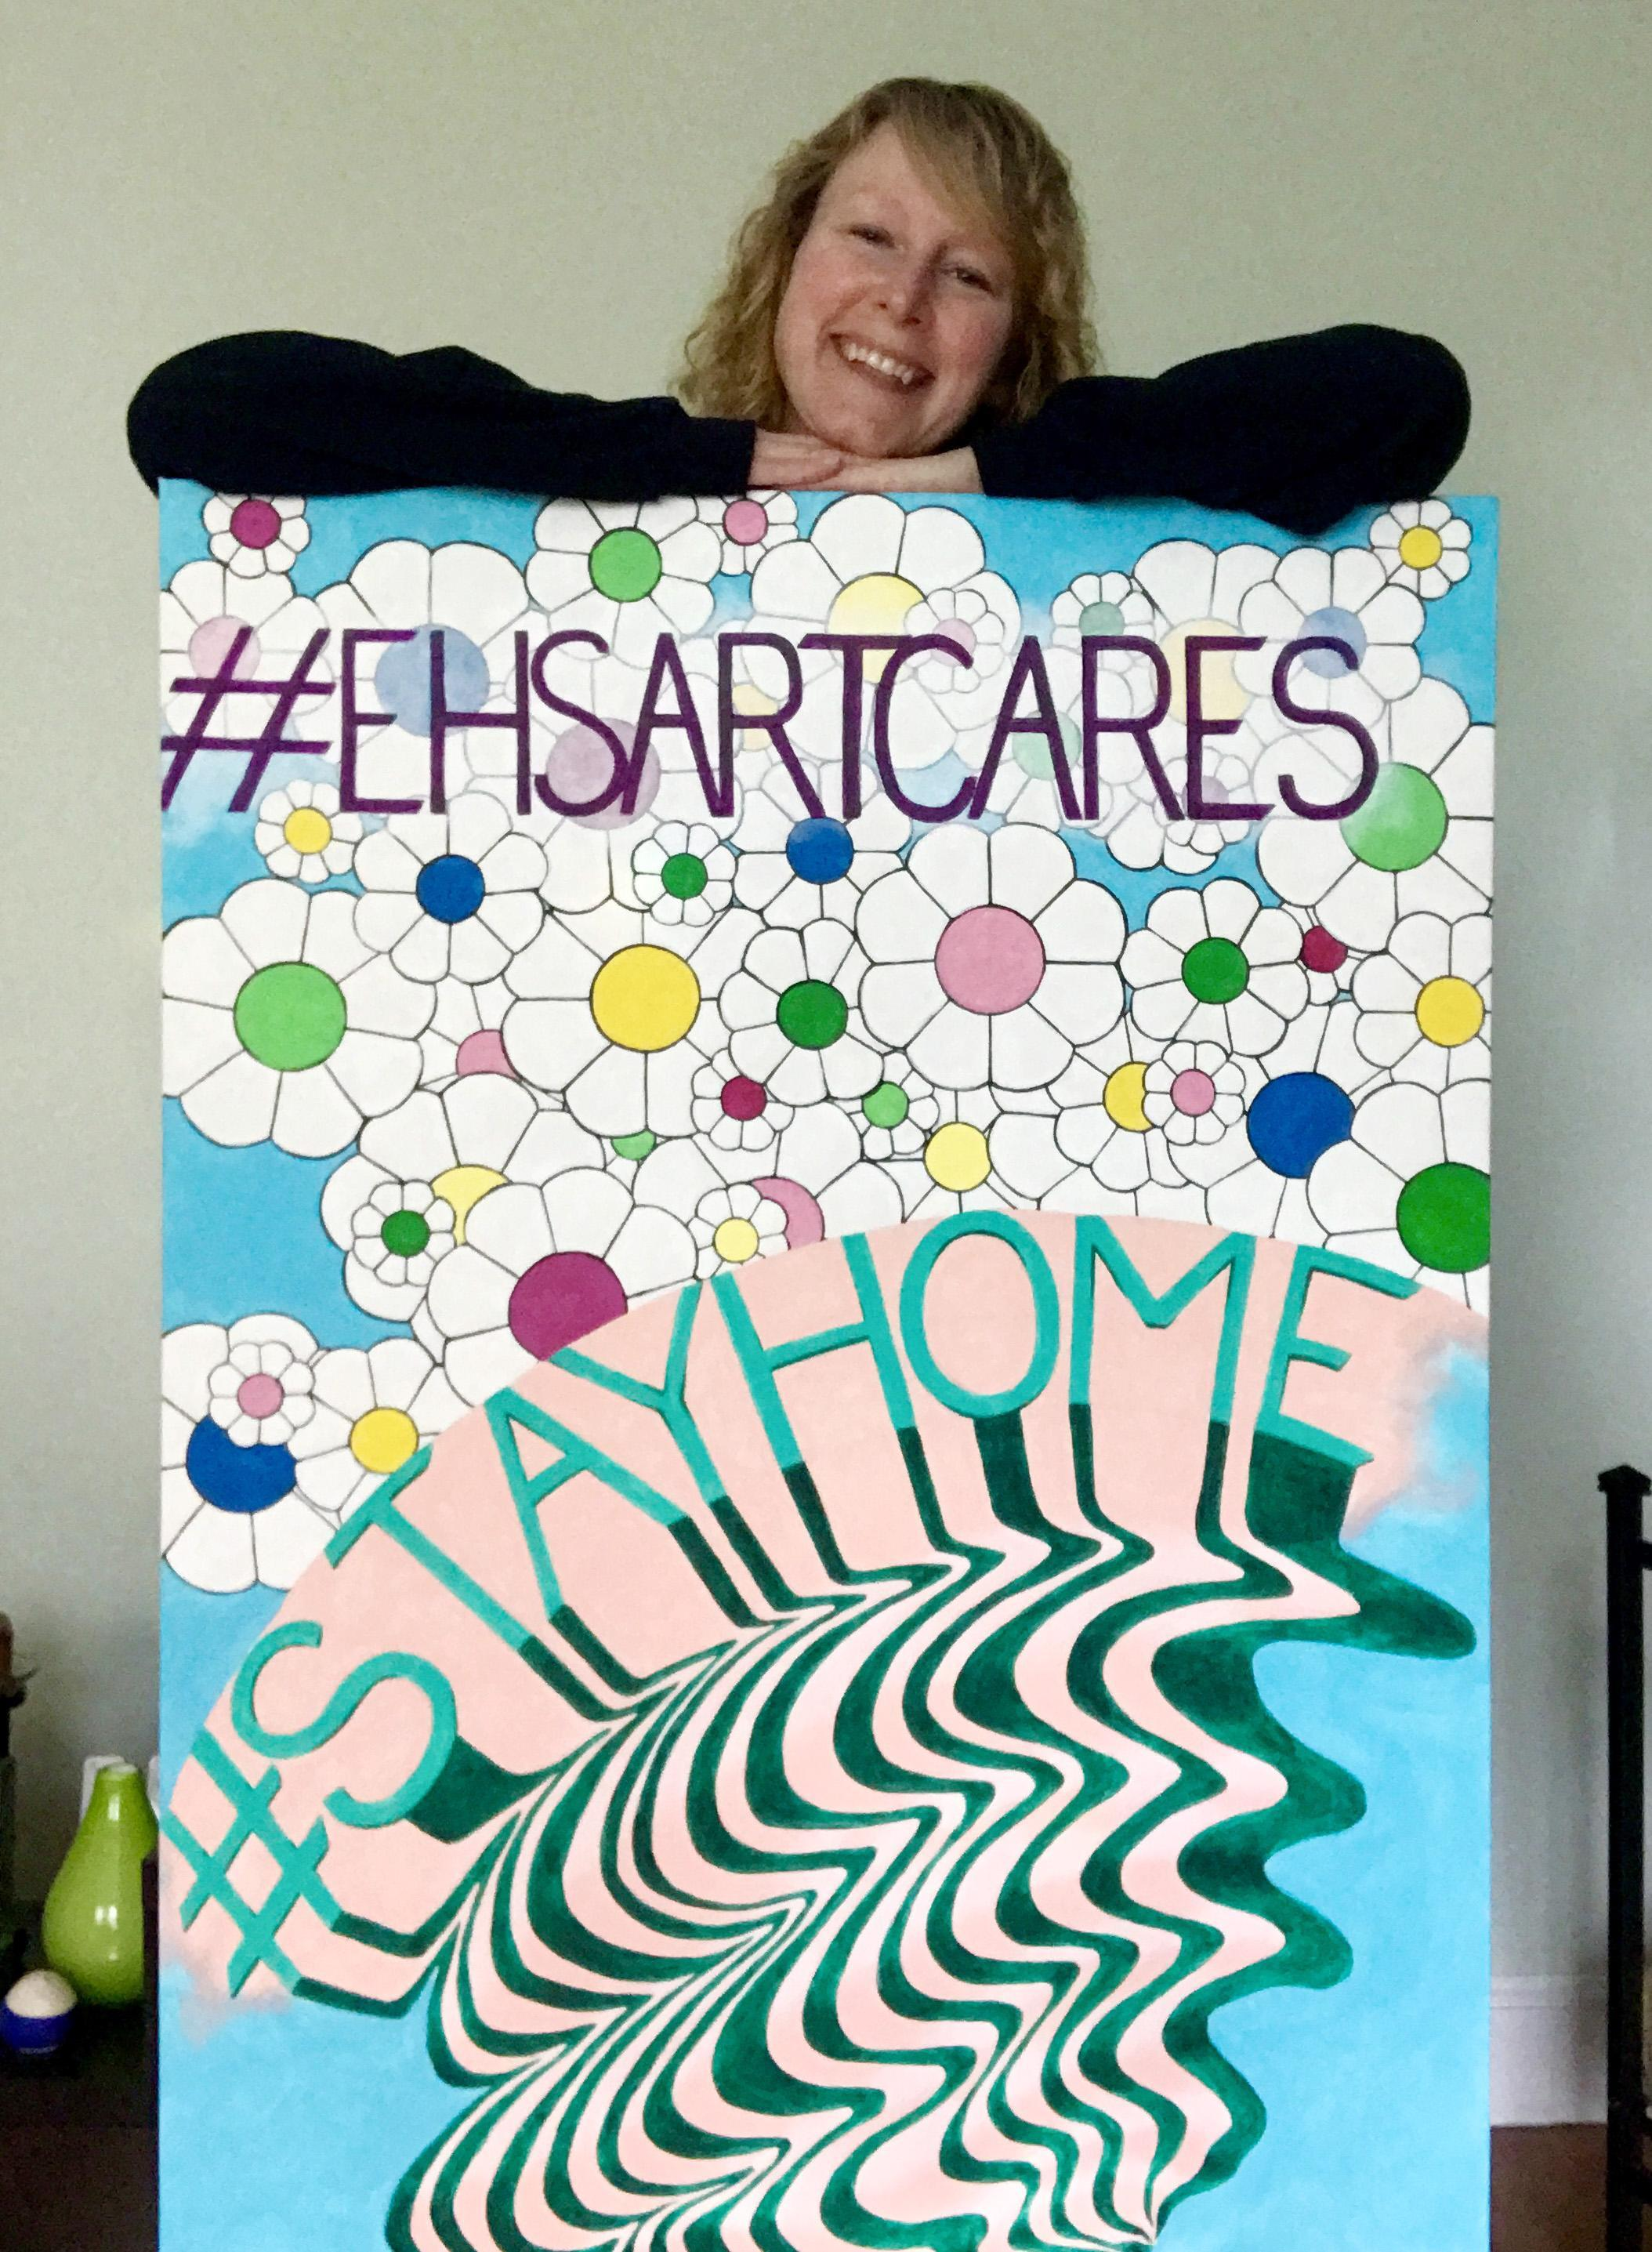 A large poster with flowers and the words 'Everett arts cares' in a wavy design